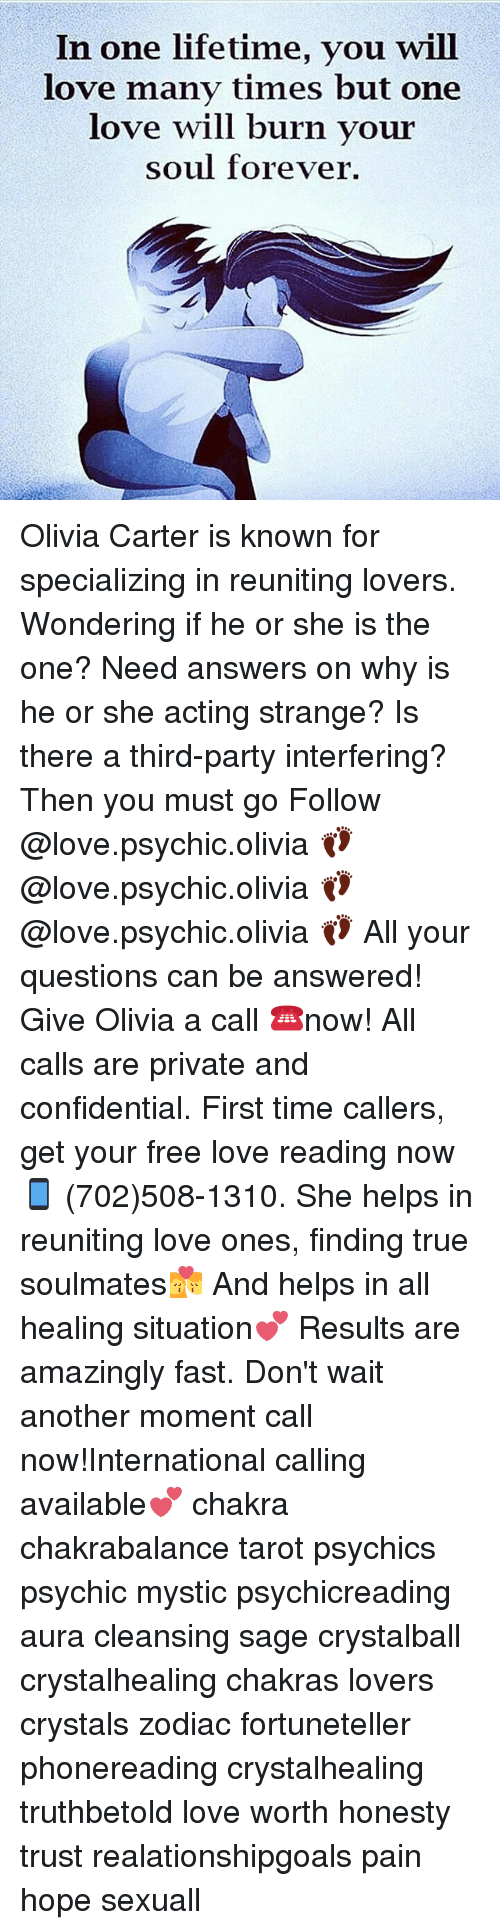 Third Party: In one lifetime, you will  love many times but one  love will burn vour  soul forever. Olivia Carter is known for specializing in reuniting lovers. Wondering if he or she is the one? Need answers on why is he or she acting strange? Is there a third-party interfering? Then you must go Follow @love.psychic.olivia 👣 @love.psychic.olivia 👣 @love.psychic.olivia 👣 All your questions can be answered! Give Olivia a call ☎️now! All calls are private and confidential. First time callers, get your free love reading now 📱 (702)508-1310. She helps in reuniting love ones, finding true soulmates💏 And helps in all healing situation💕 Results are amazingly fast. Don't wait another moment call now!International calling available💕 chakra chakrabalance tarot psychics psychic mystic psychicreading aura cleansing sage crystalball crystalhealing chakras lovers crystals zodiac fortuneteller phonereading crystalhealing truthbetold love worth honesty trust realationshipgoals pain hope sexuall